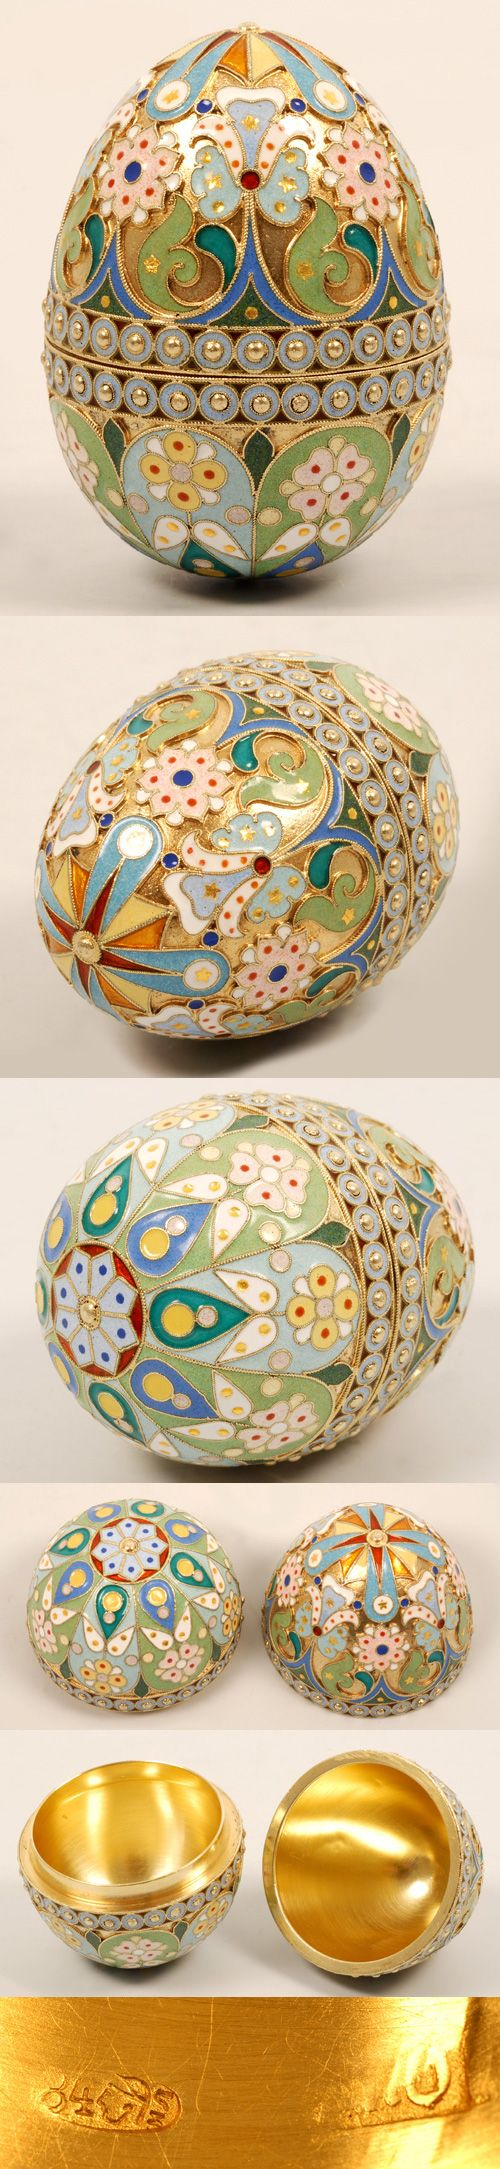 A Russian silver gilt and cloisonne enamel egg, Pavel Ovchinnikov, Moscow, circa 1896-1908. The two-part egg decorated in pastel multi-color stylized scroll, flower and geometric motifs with a double band of pale blue enamel circles centered with raised gilded silver beads.